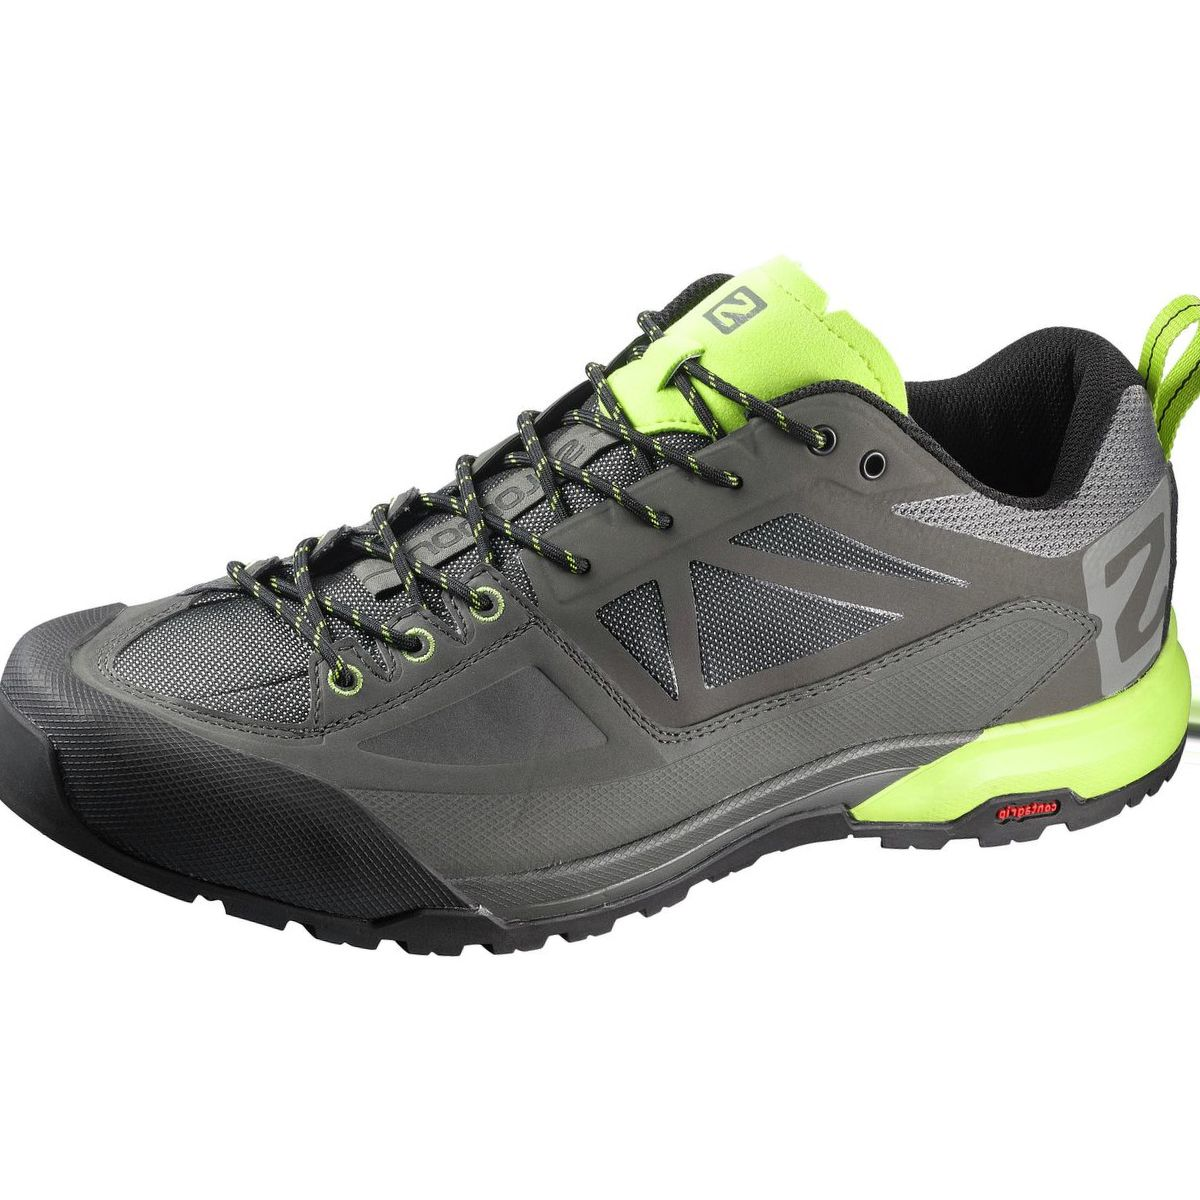 Salomon X Alp Spry Approach Shoe - Men's